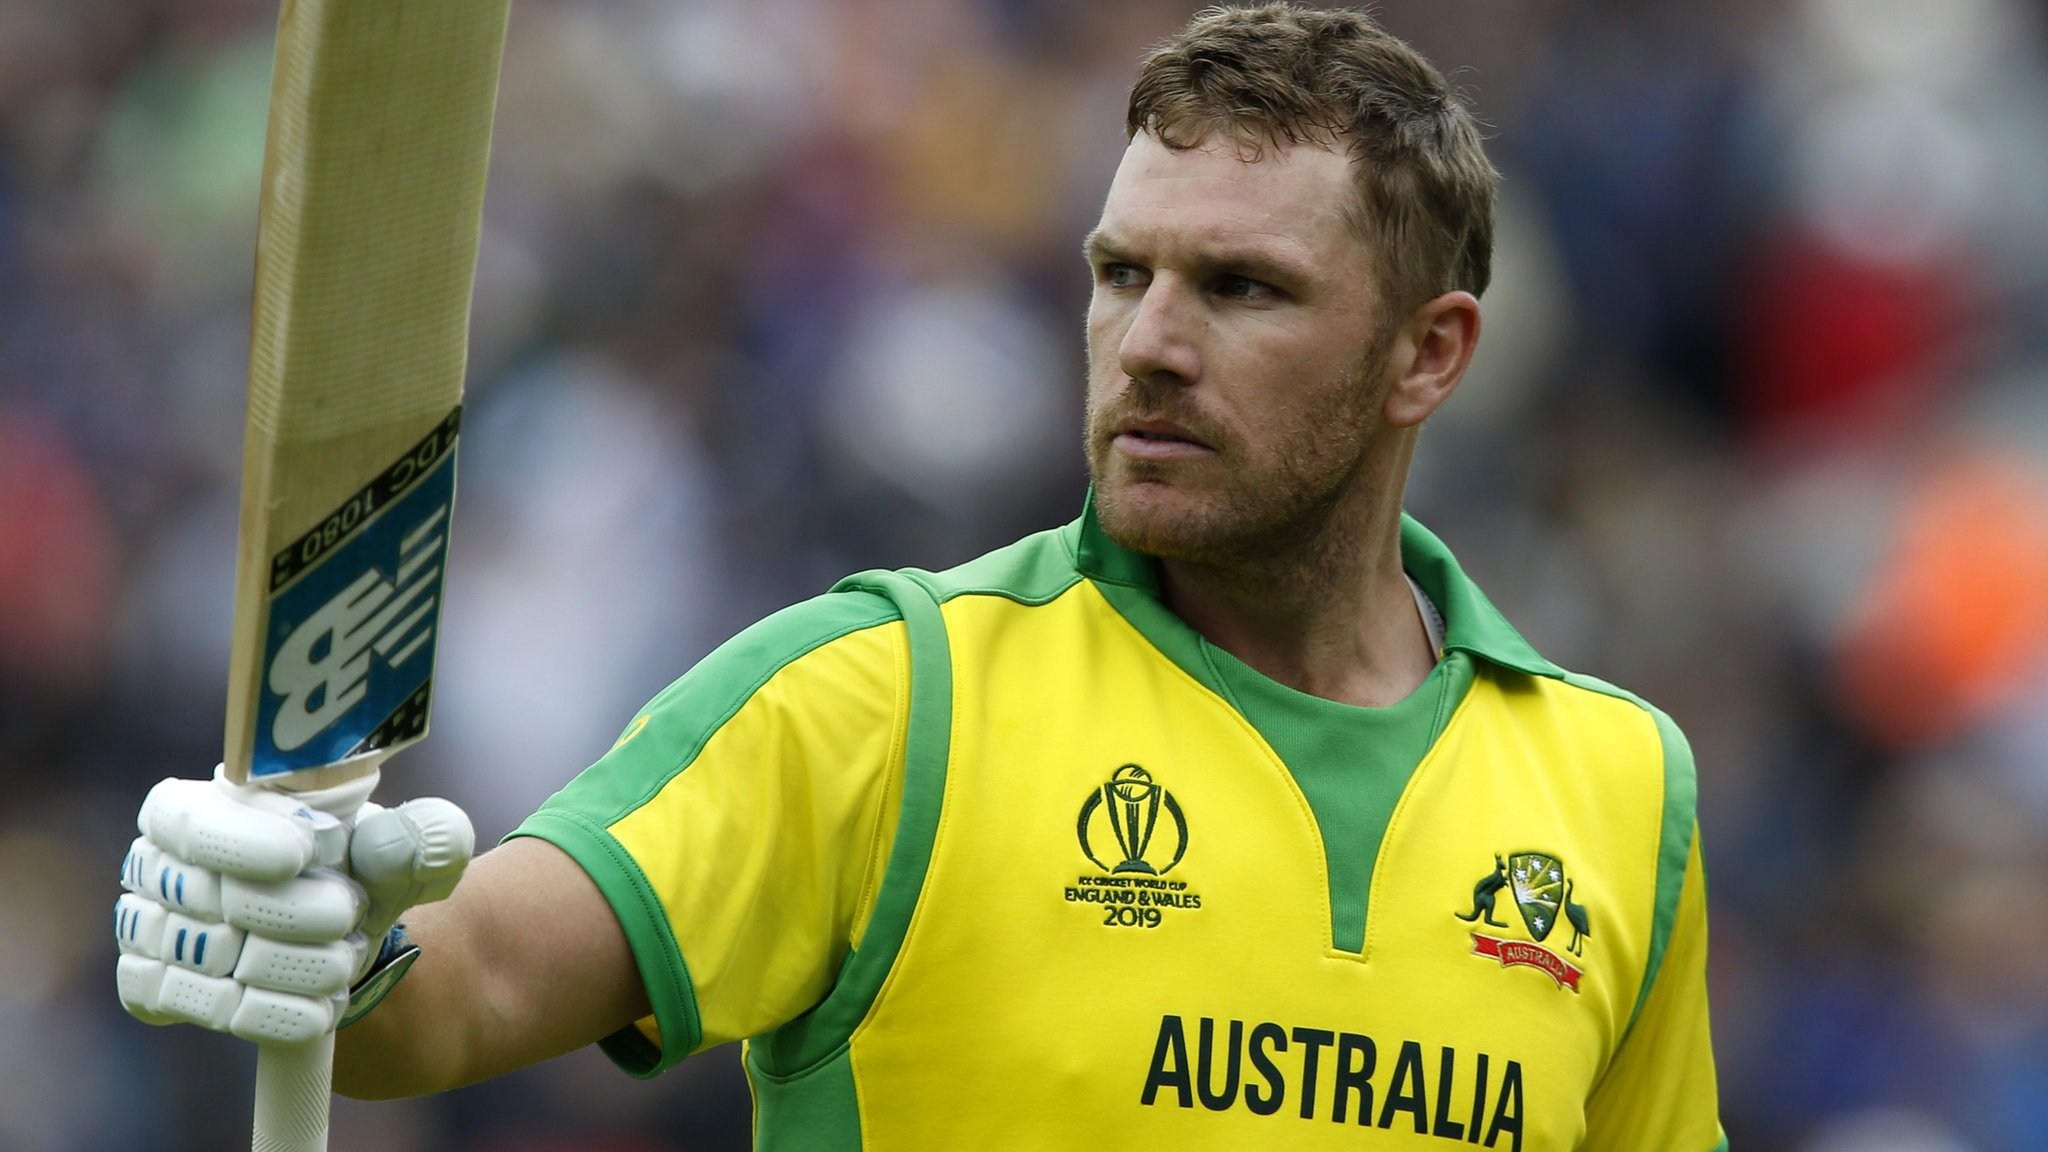 Australia v Sri Lanka: Aaron Finch & Mitchell Starc lead defending champions to victory